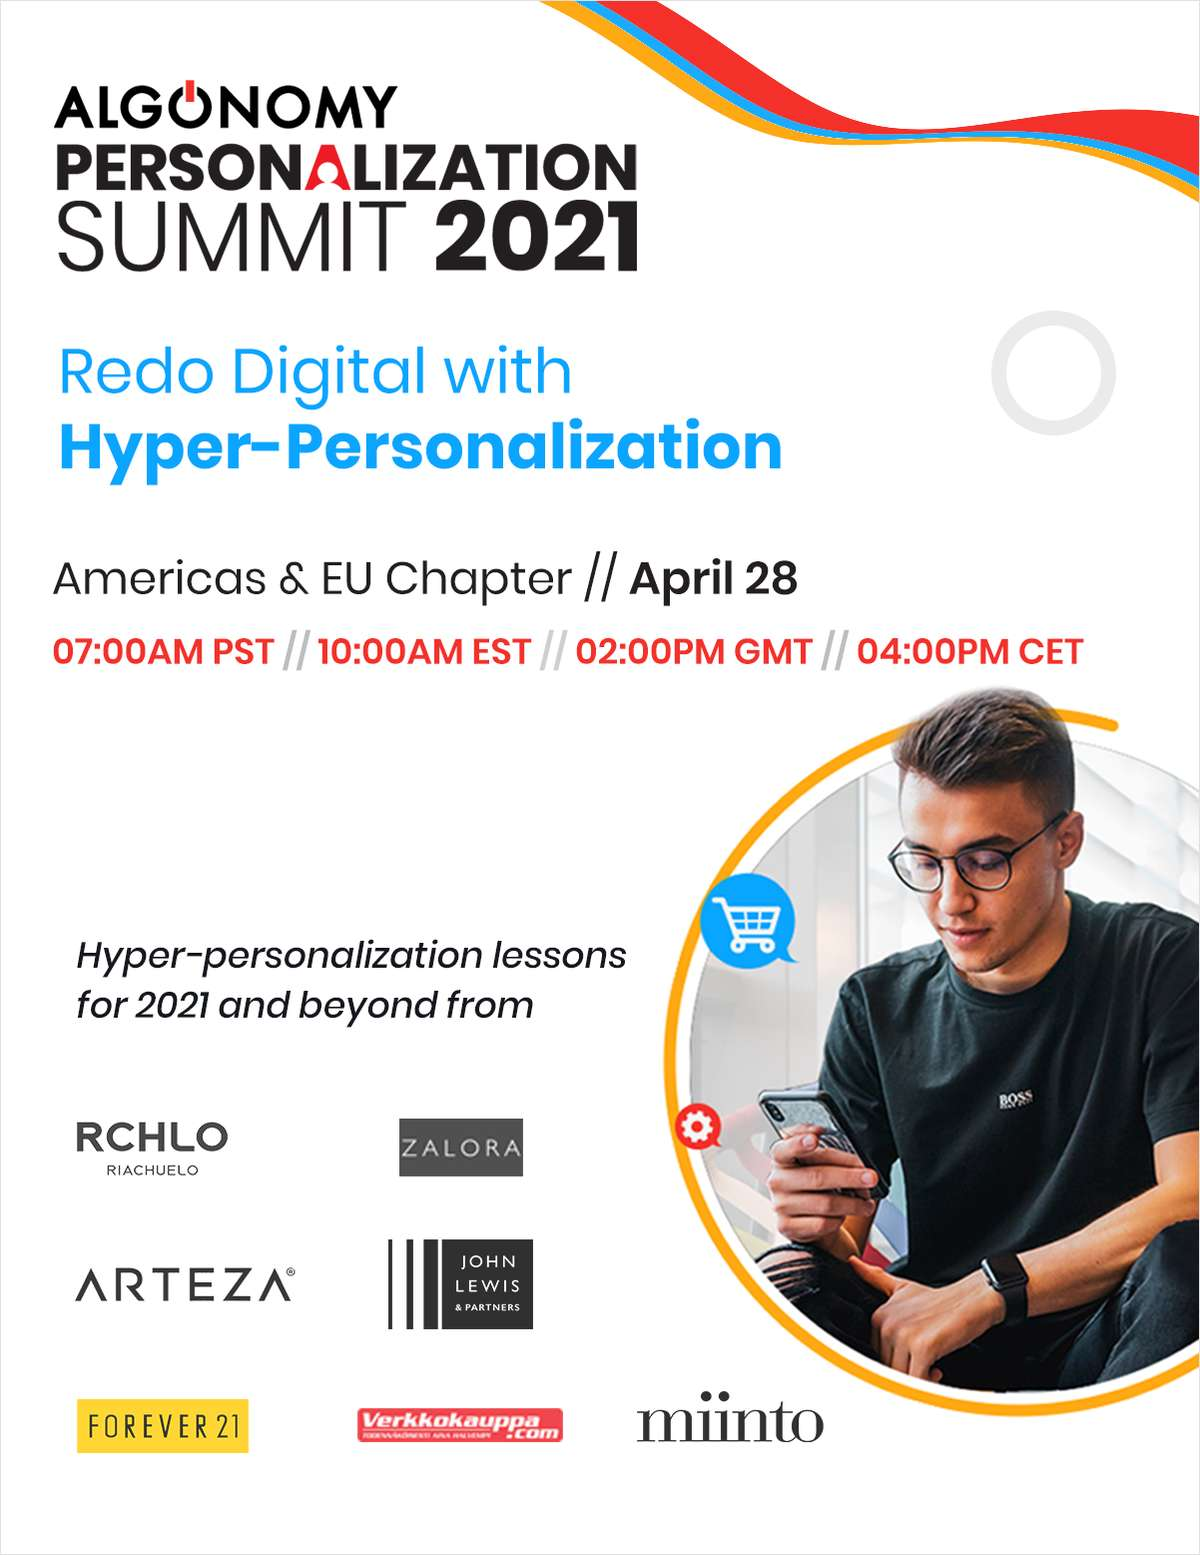 Shaping Exceptional Digital Experiences: Redo Digital with Hyper-Personalization